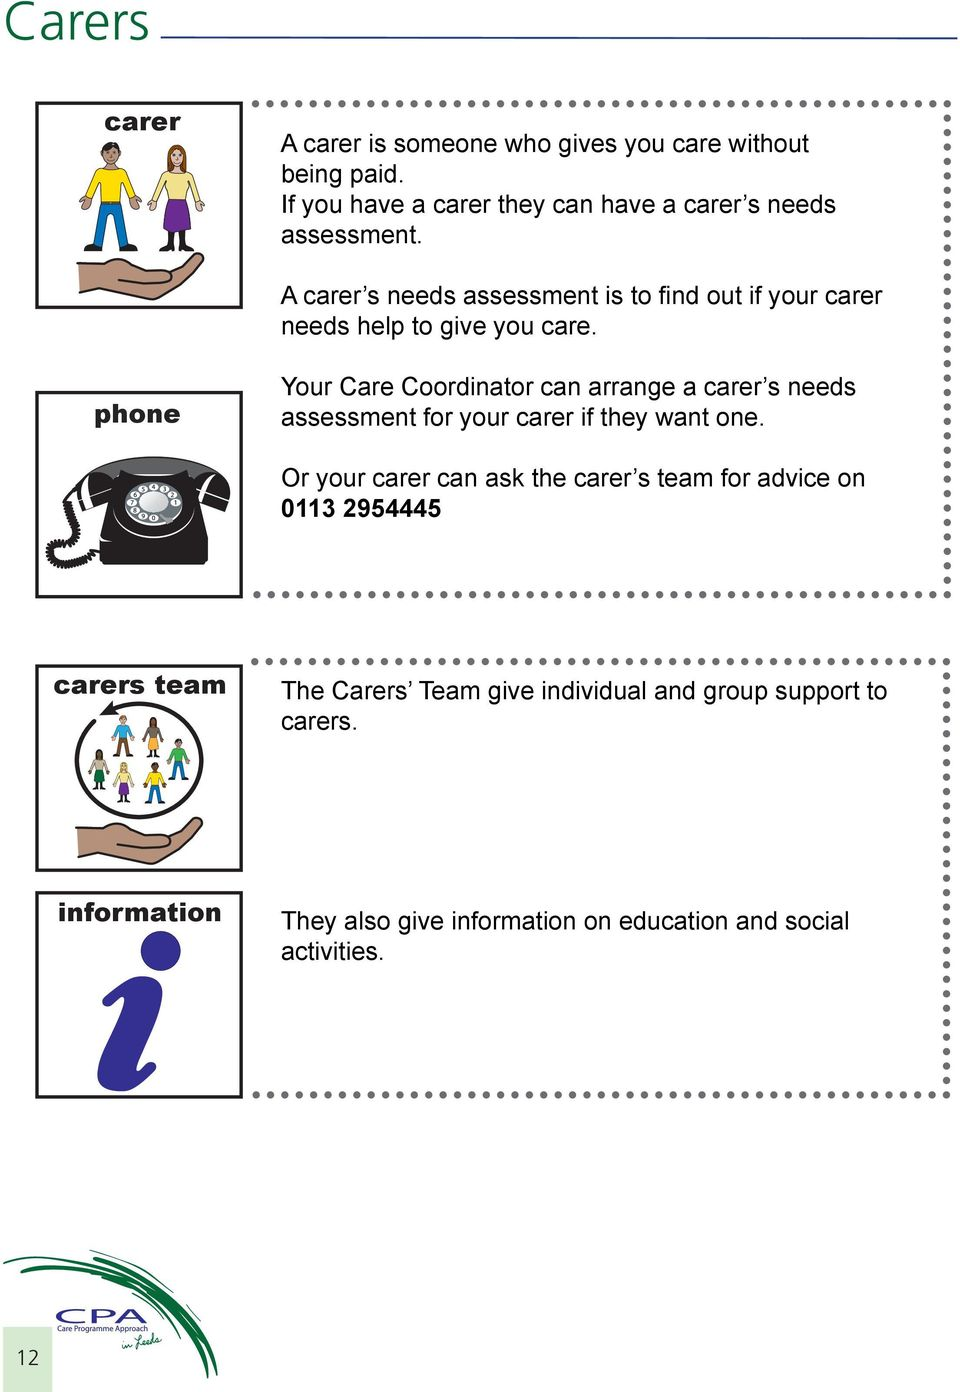 phone Your Care Coordinator can arrange a carer s needs assessment for your carer if they want one.